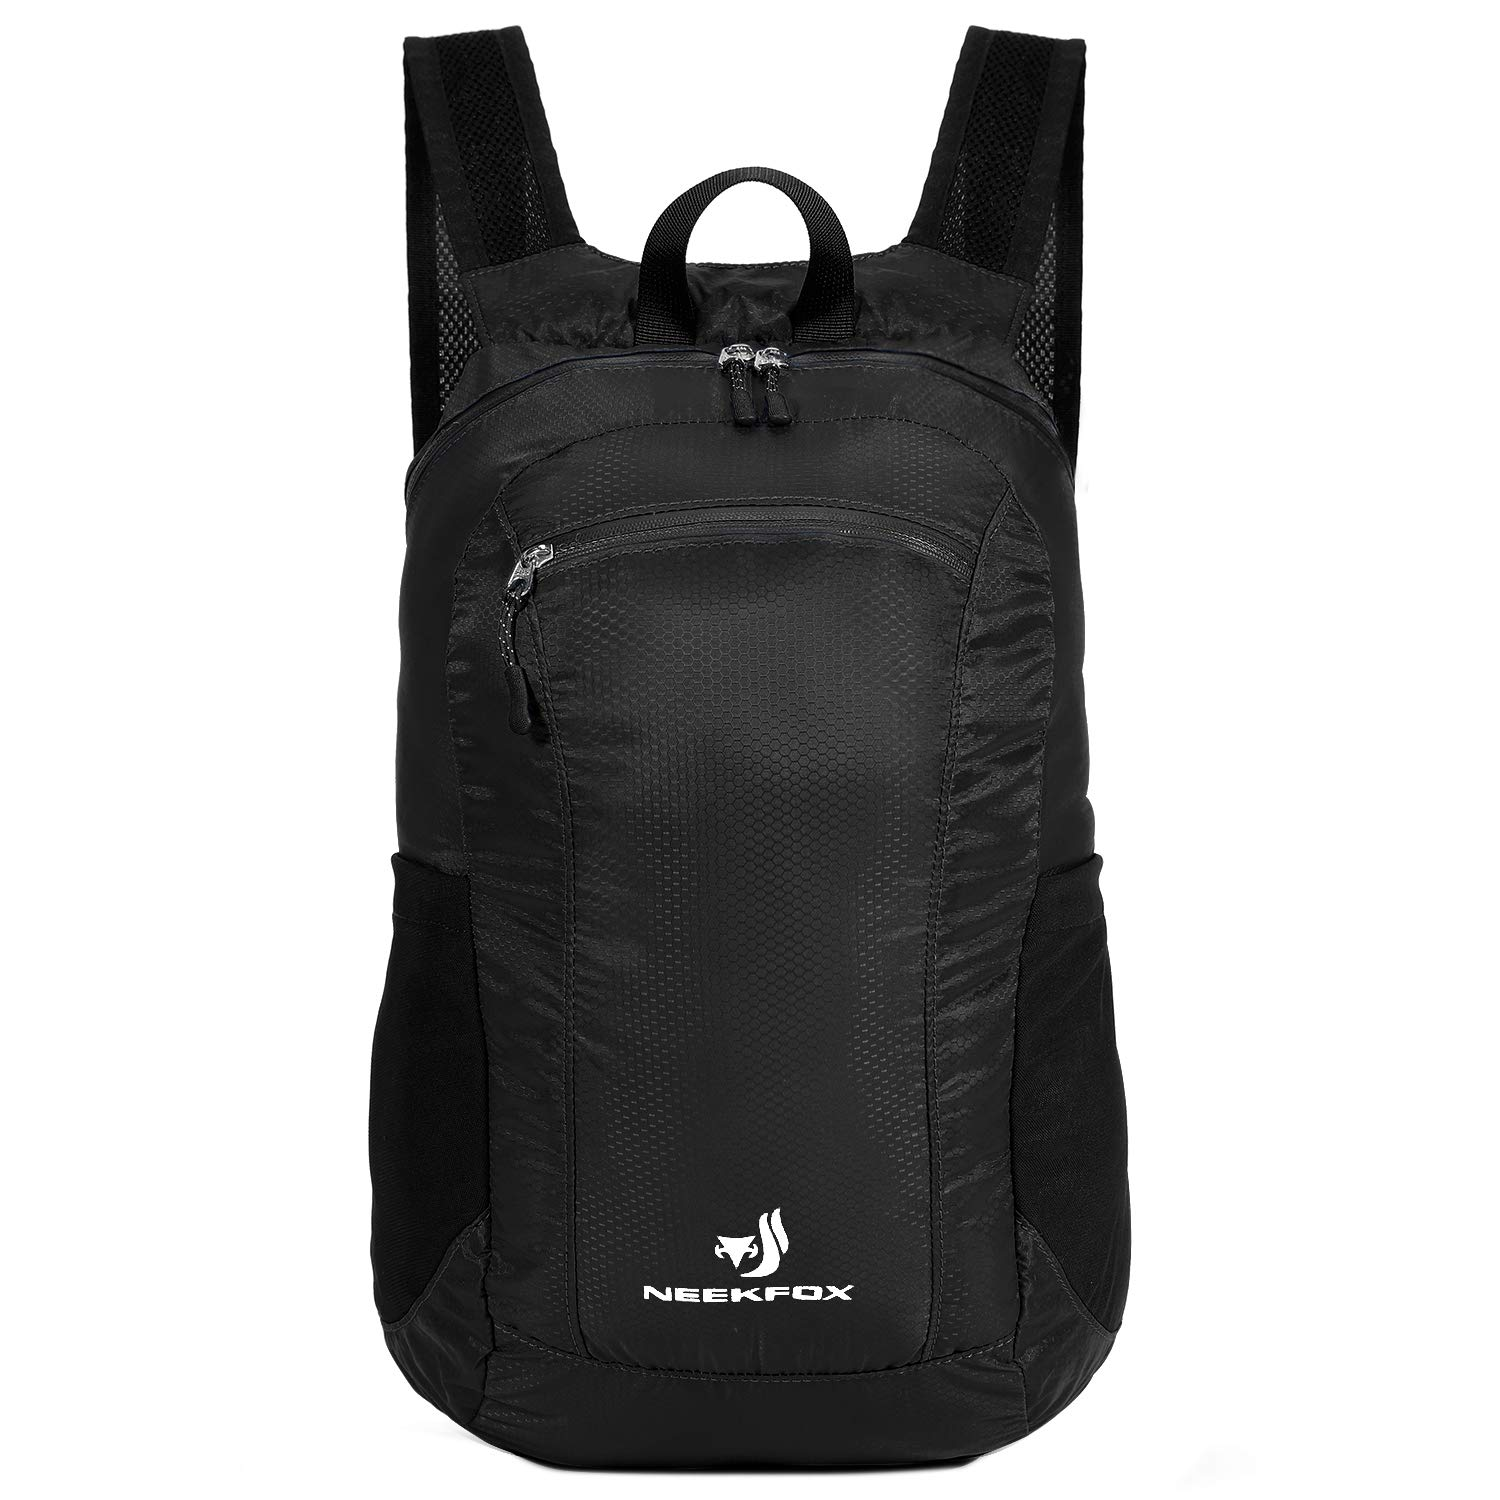 78cc7ffba2a7 NEEKFOX 18L Packable Lightweight Travel Hiking Backpack Small Water  Resistant Hiking Daypack